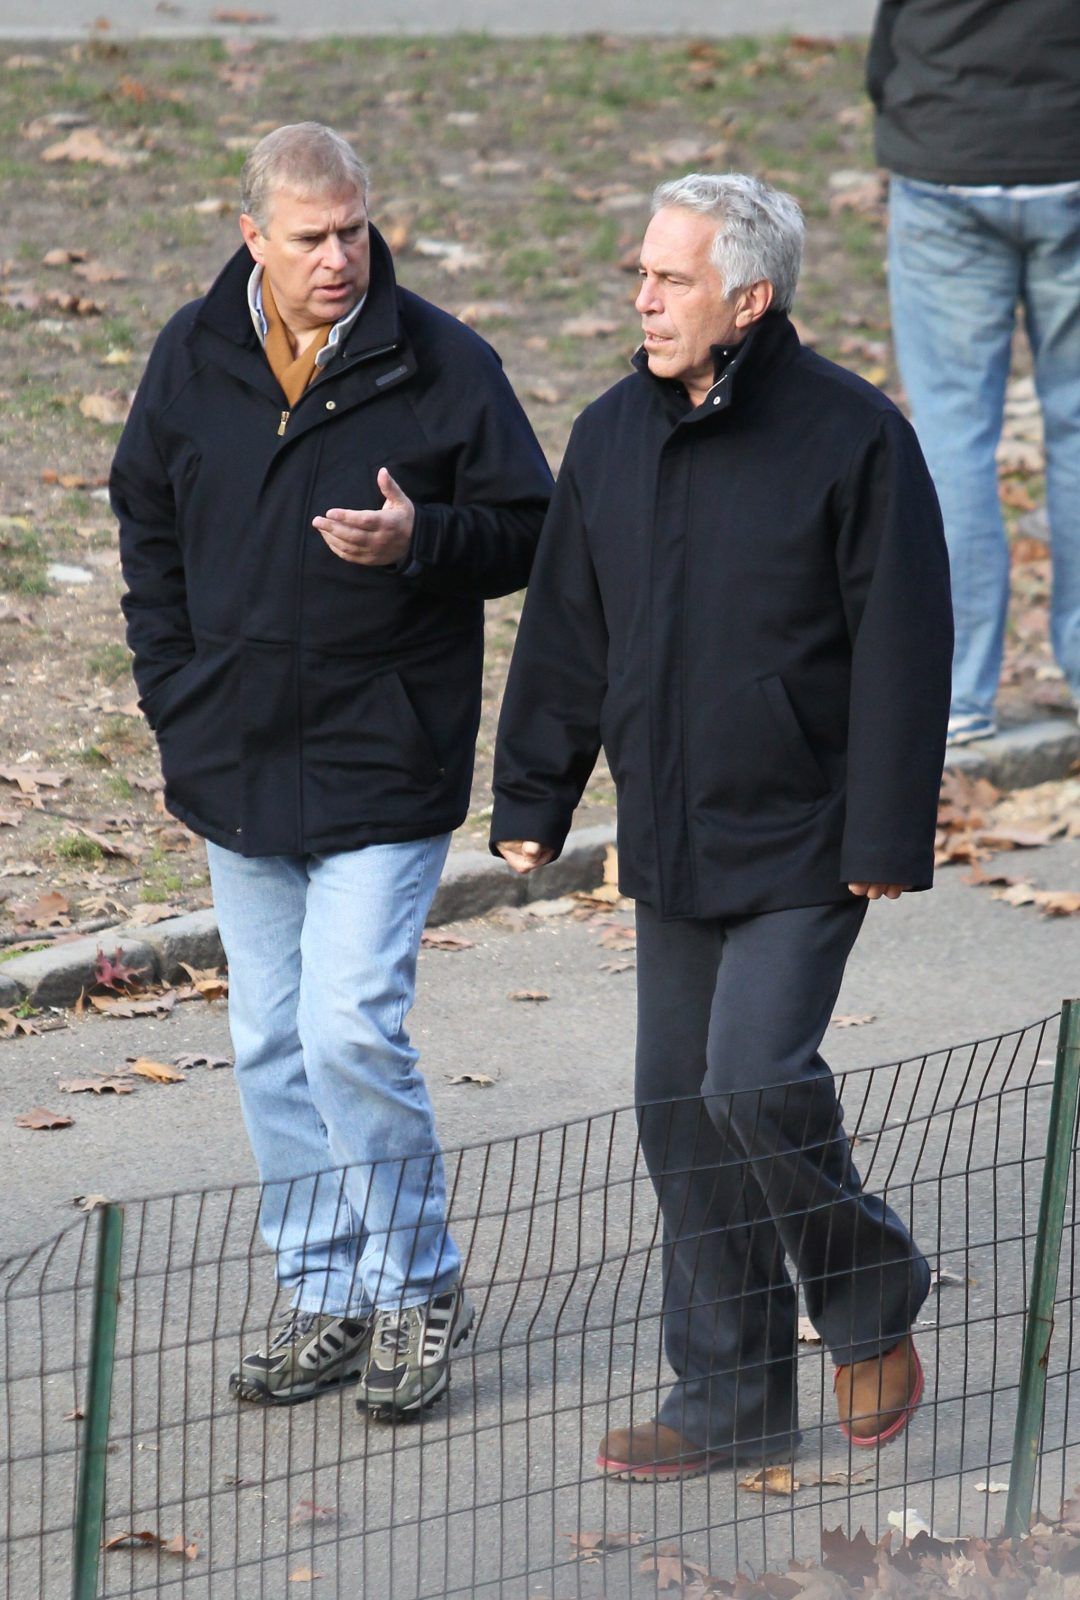 Prince Andrew, pictured with Jeffrey Epstein in New York in 2010